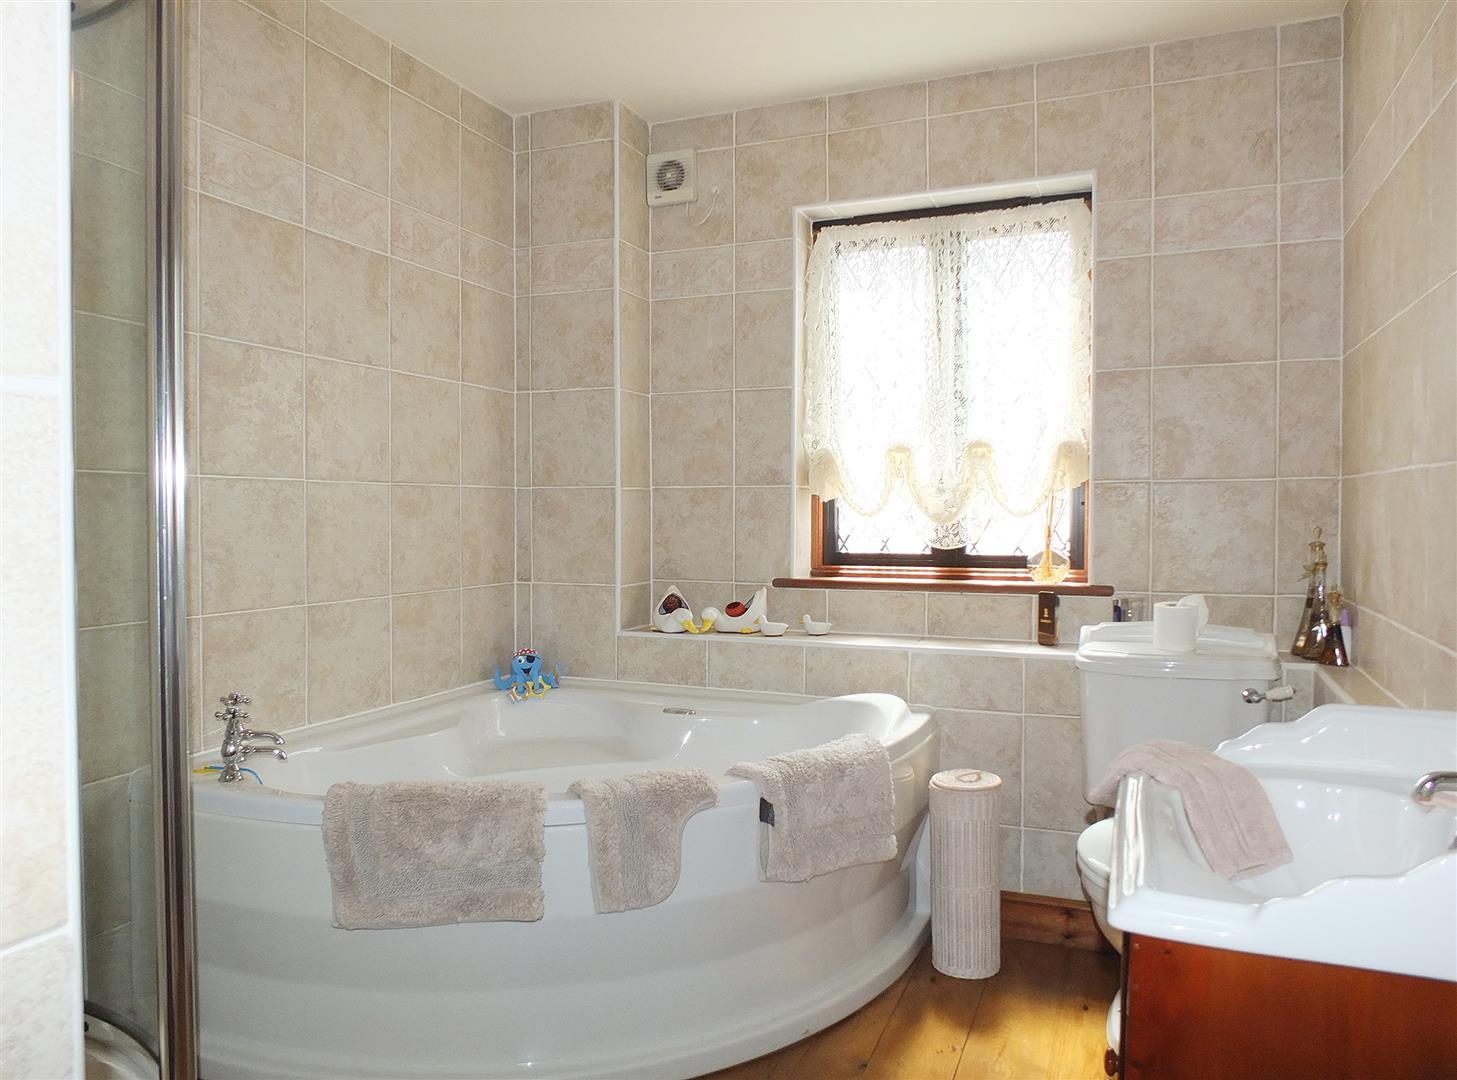 5 bed detached house for sale in Boston, PE20 2DB 22